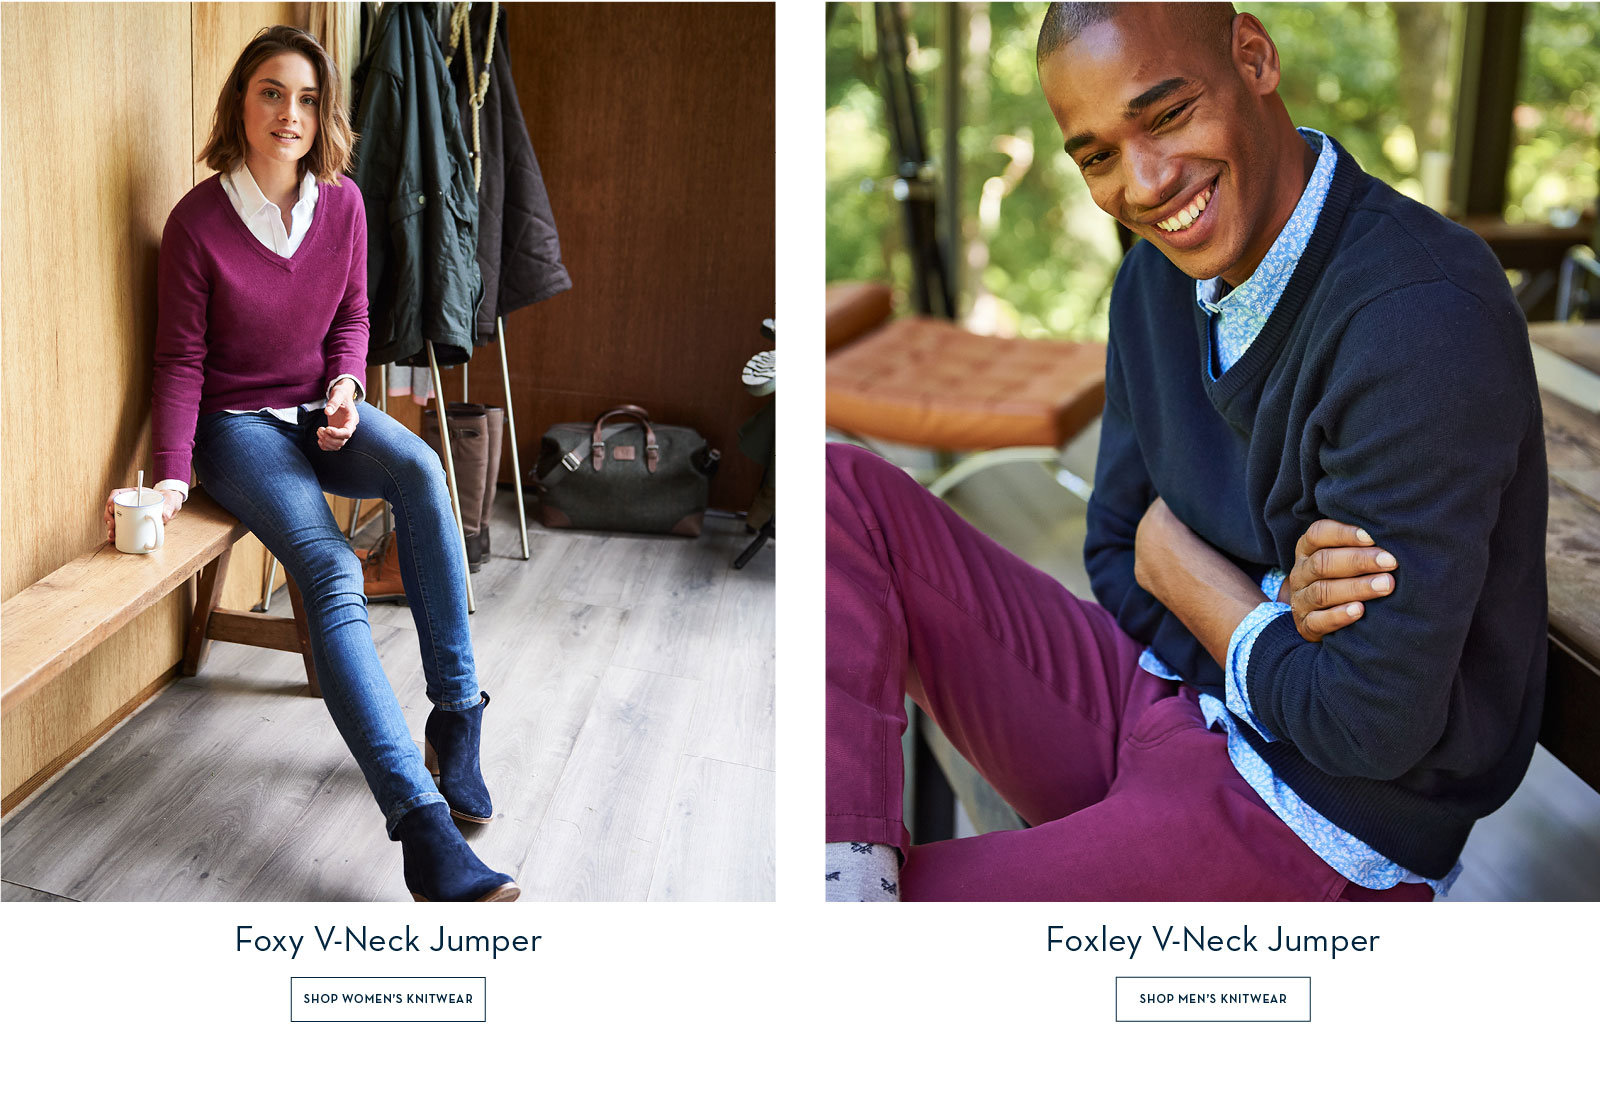 Womens Foxy and Men's Foxley Jumpers